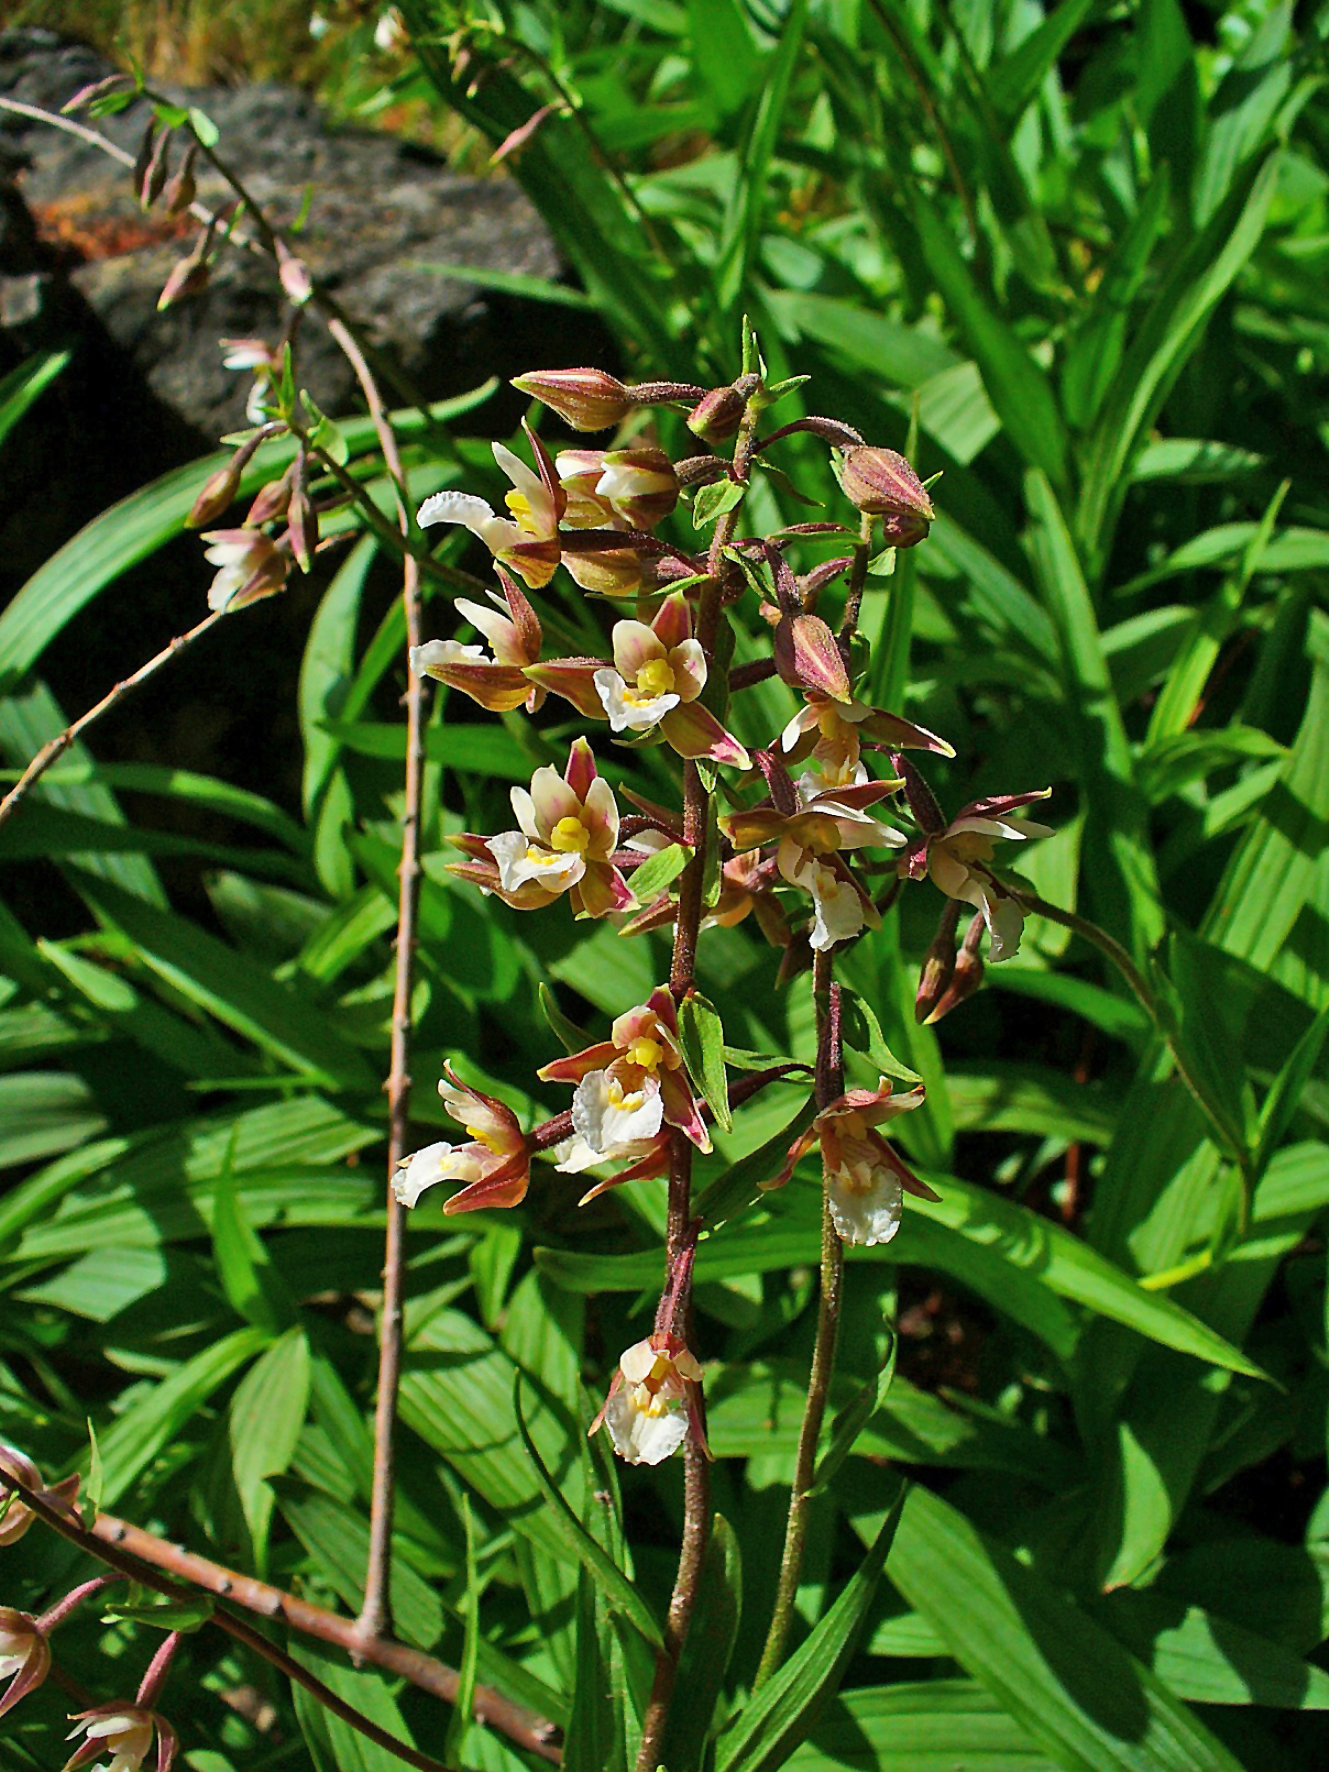 http://upload.wikimedia.org/wikipedia/commons/7/7b/Epipactis_palustris_002.JPG